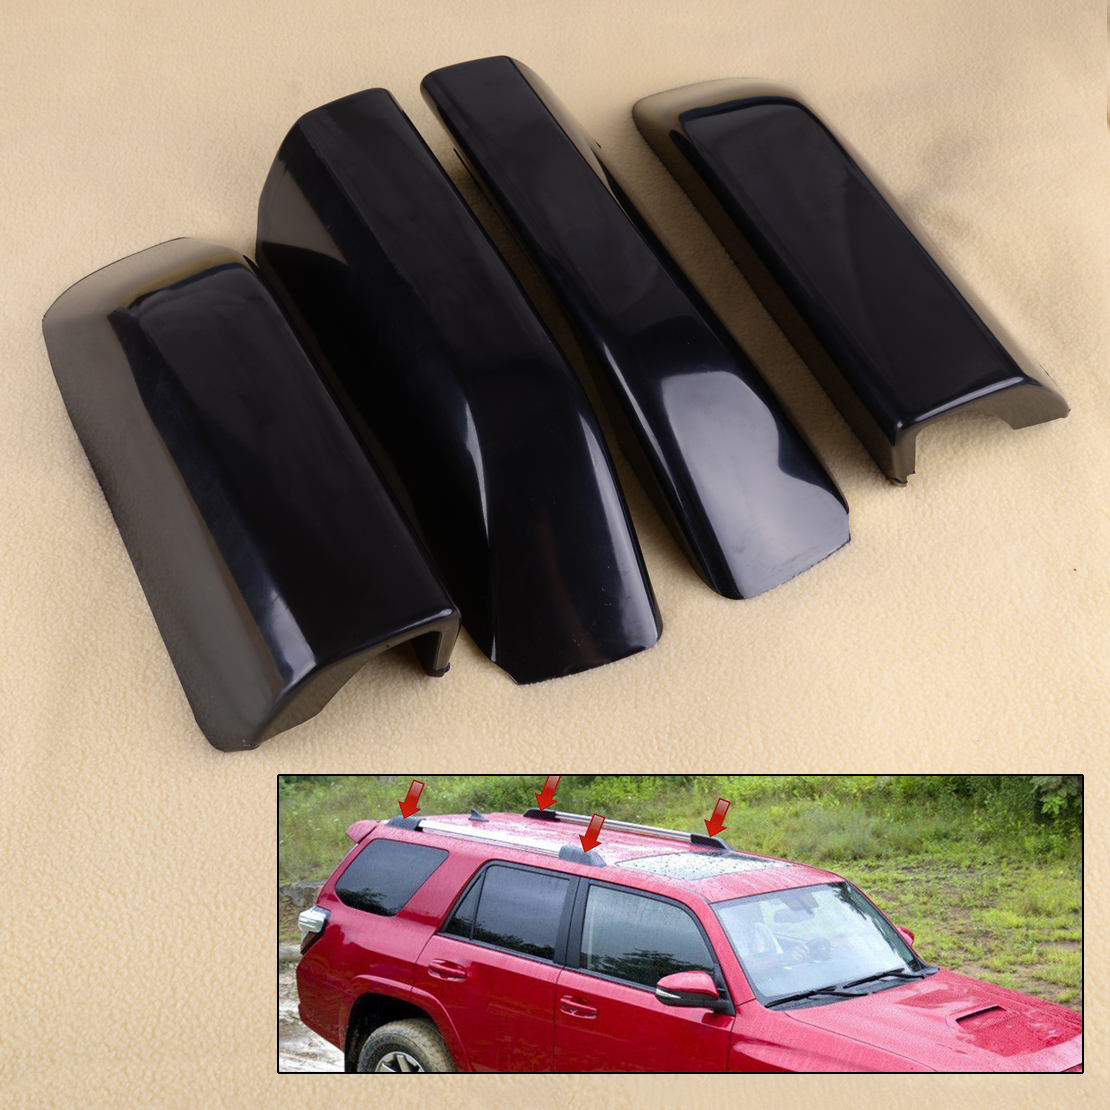 CITALL 4PCS Car Roof Luggage Rack Rail End Shell Cover fit for Toyota <font><b>4Runner</b></font> N280 <font><b>2010</b></font> 2011 2012 2013 2014 2015 2016 2017 2018 image